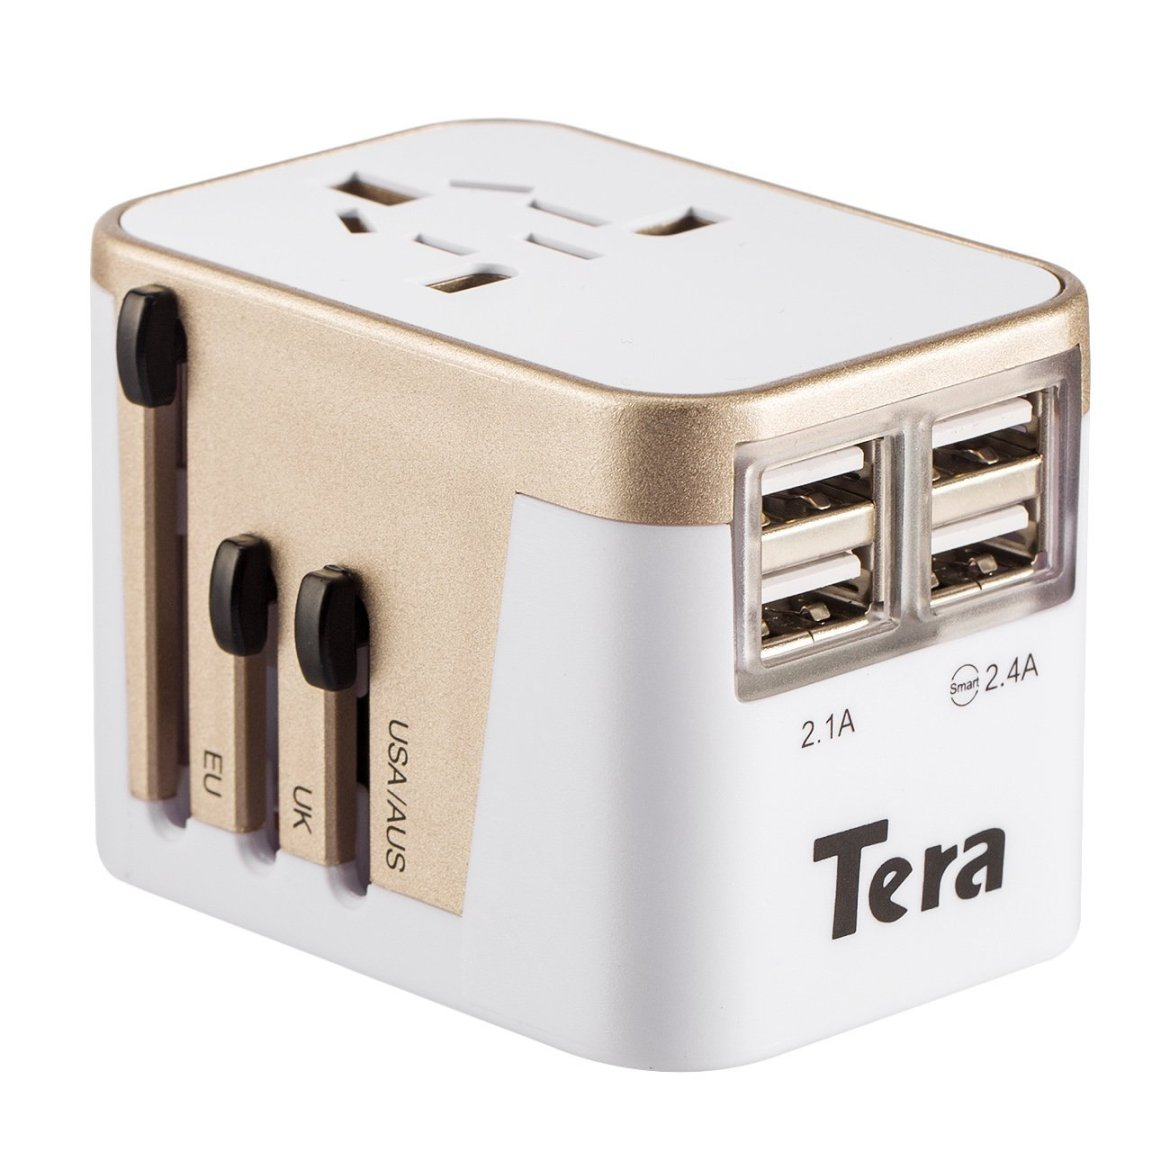 Universal Adapter with Usb plugs